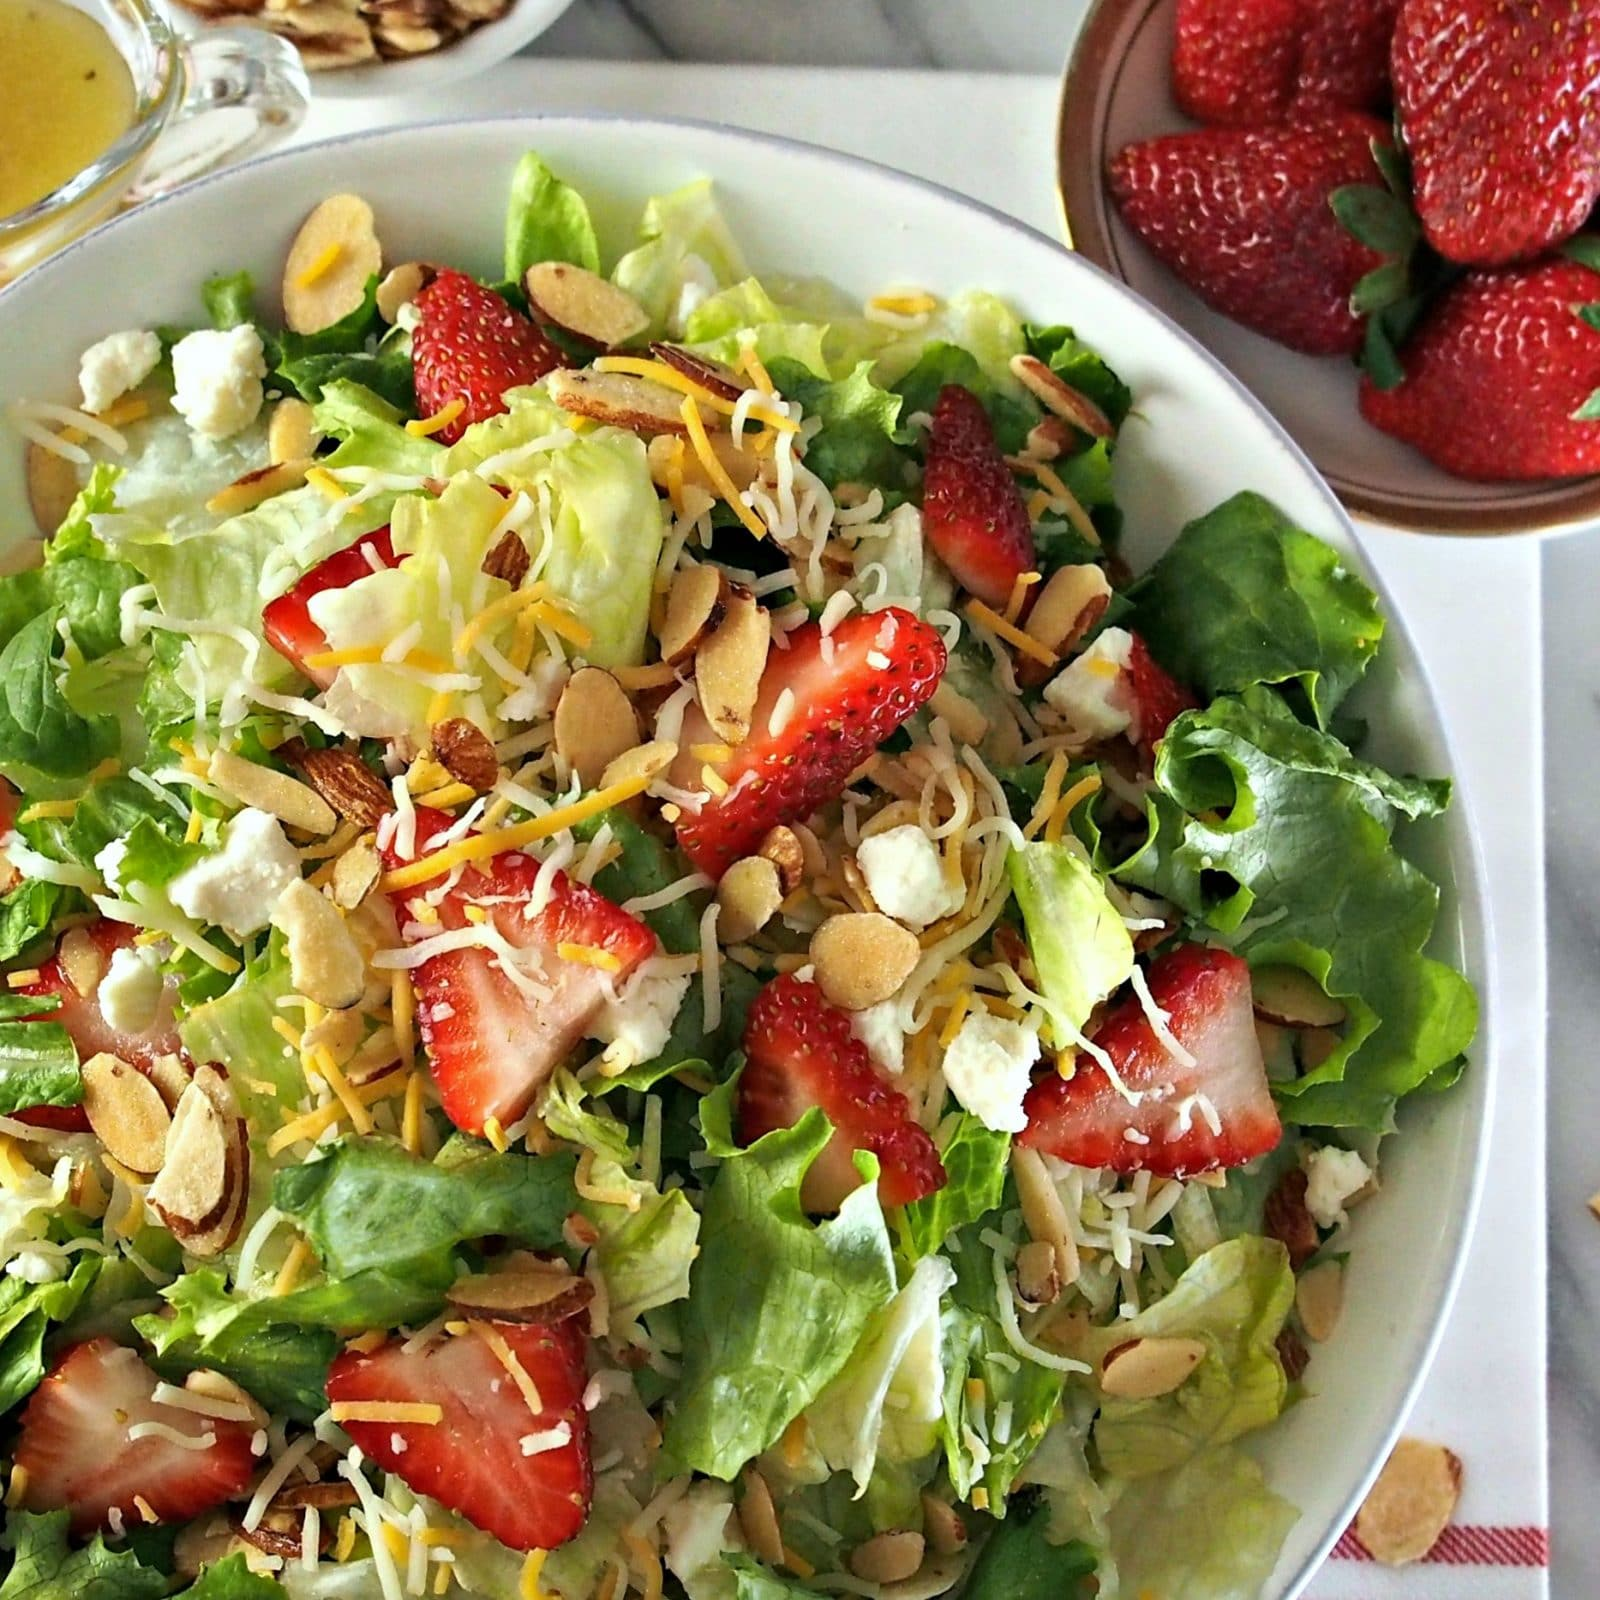 how to make a green salad with strawberries